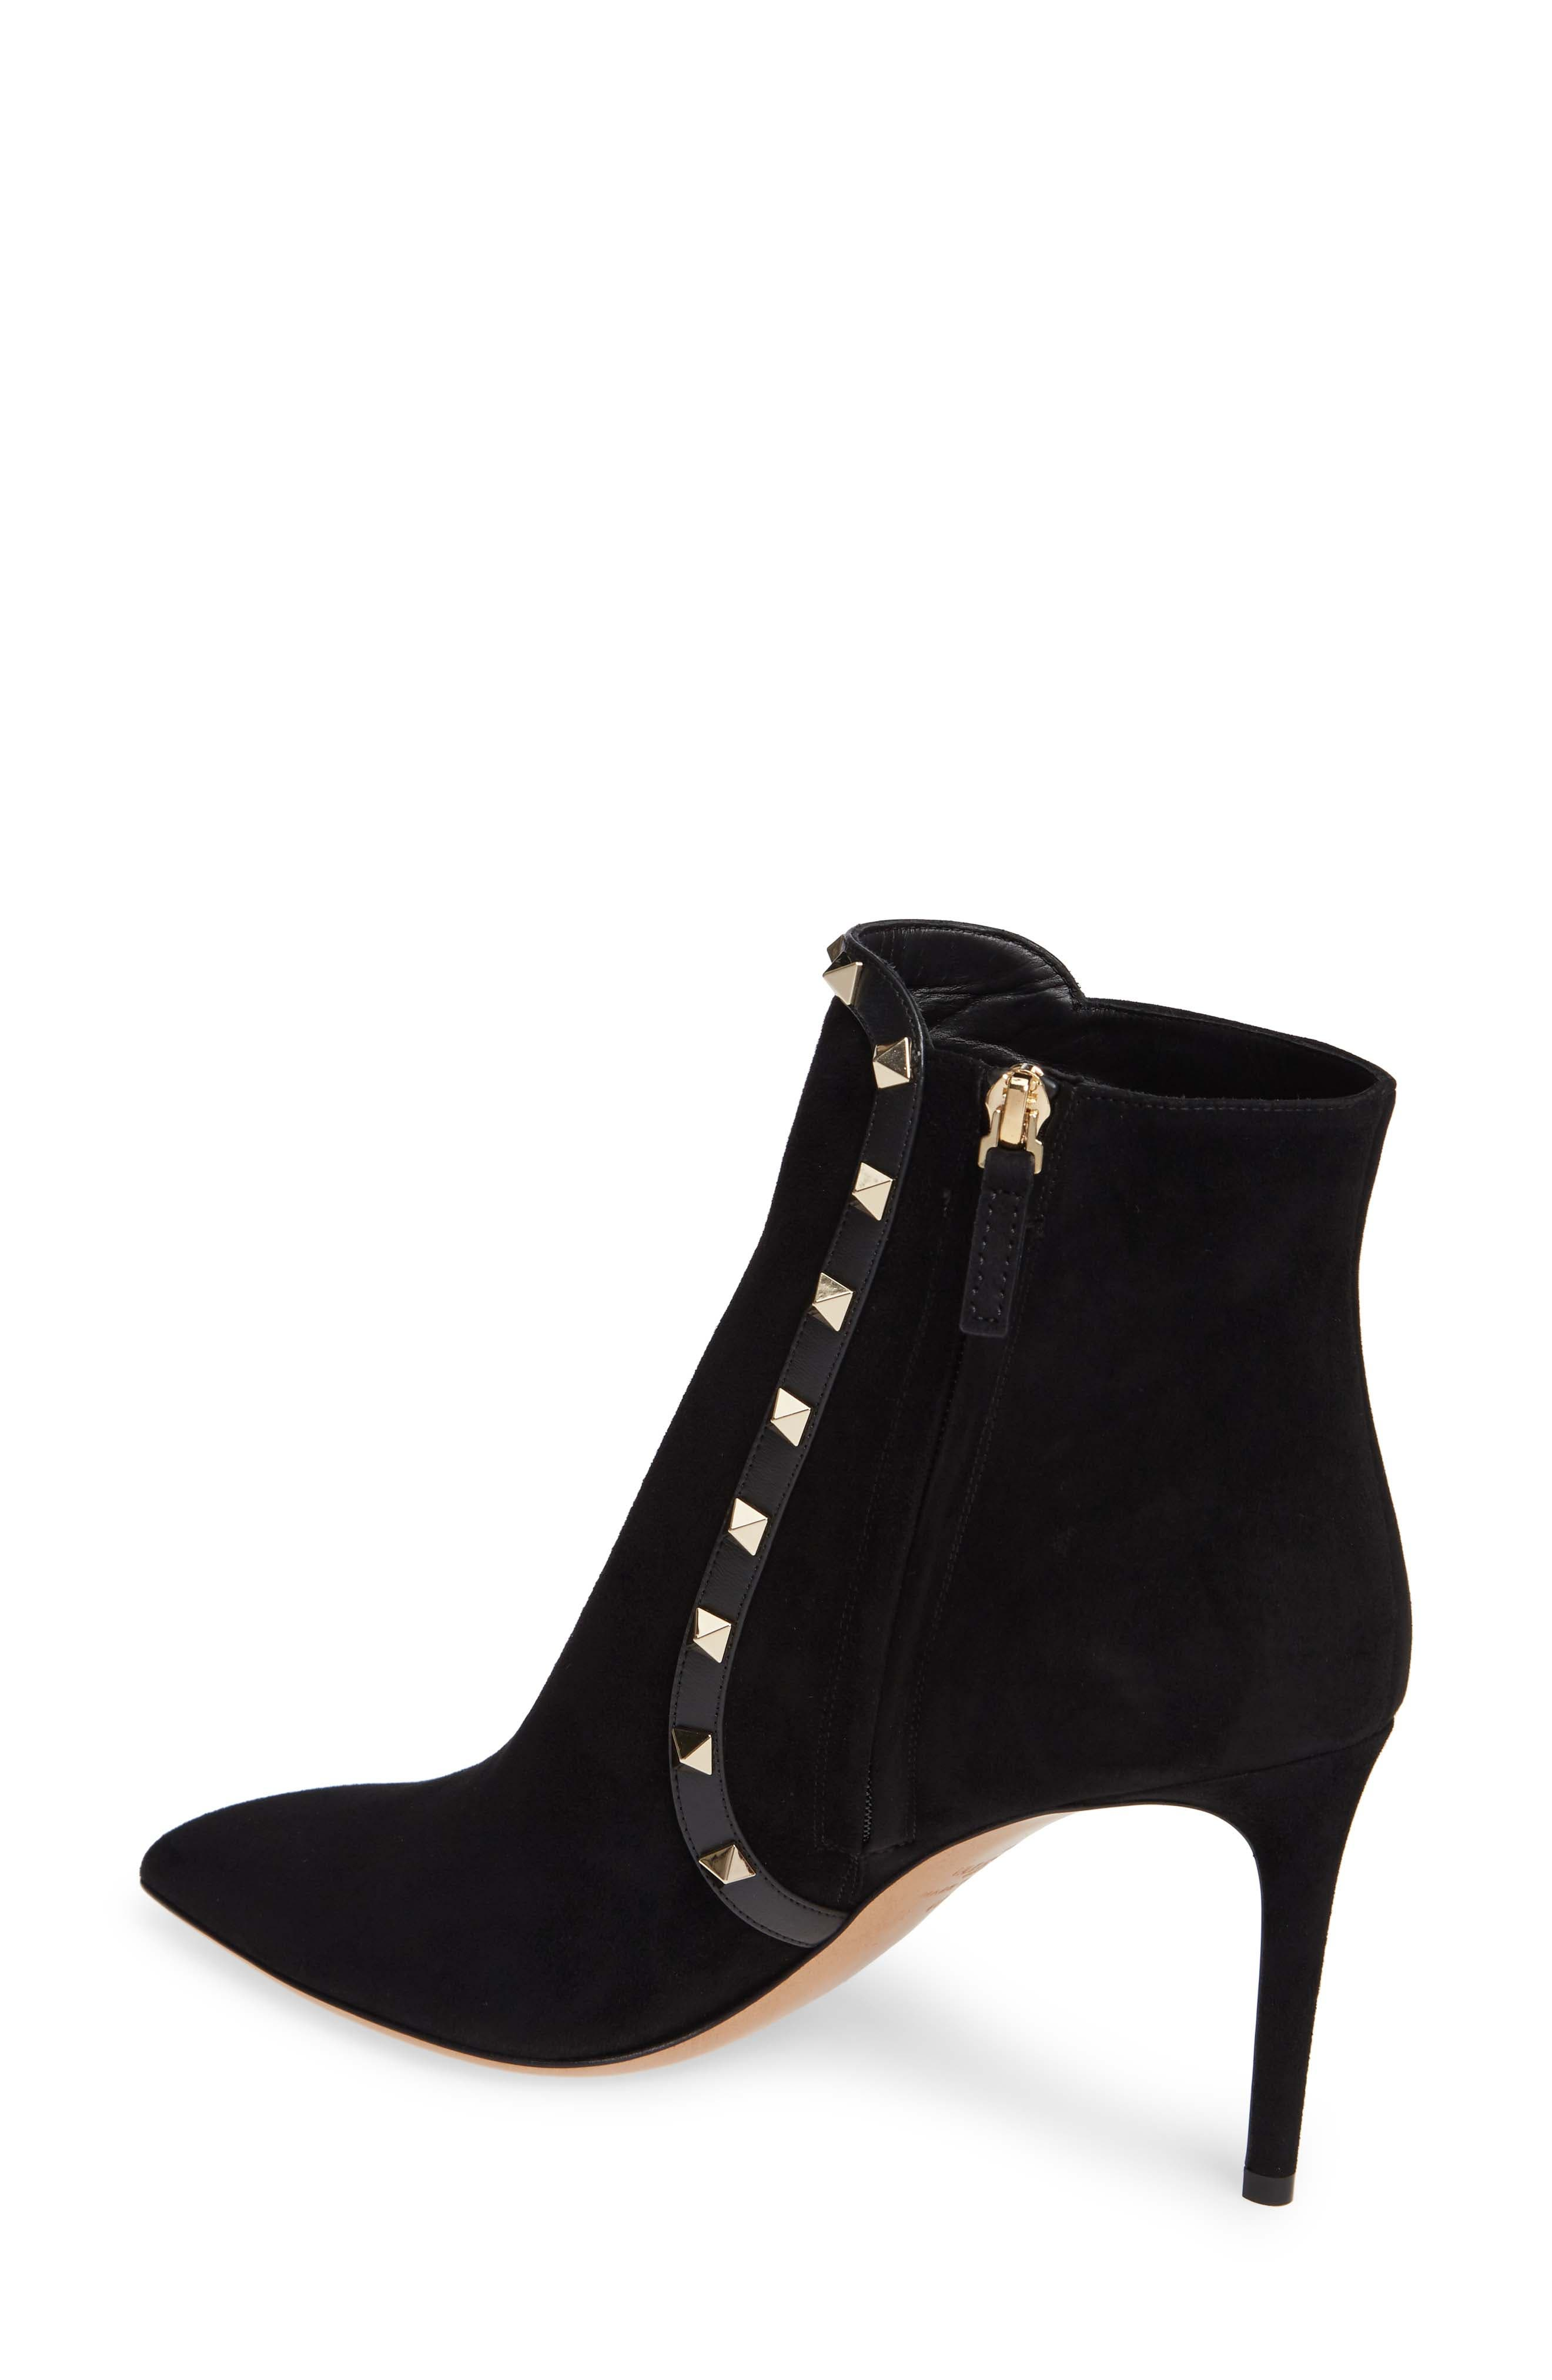 VALENTINO GARAVANI,                             Rockstud Bootie,                             Alternate thumbnail 2, color,                             BLACK